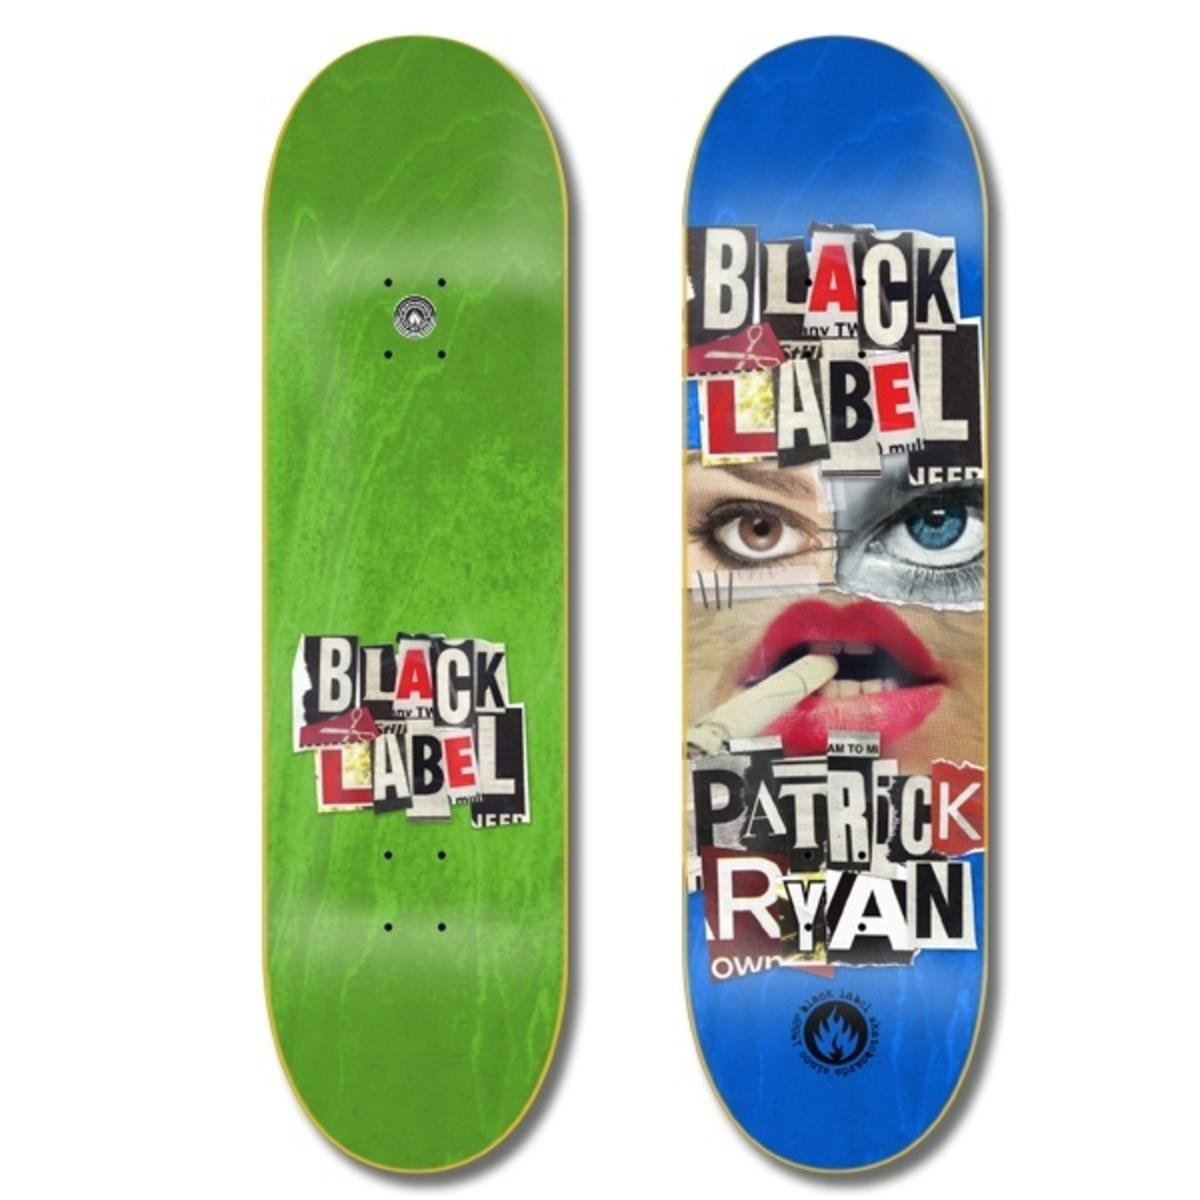 Black Label Patrick Ryan NIP-TUCK 8.25 x 32.12